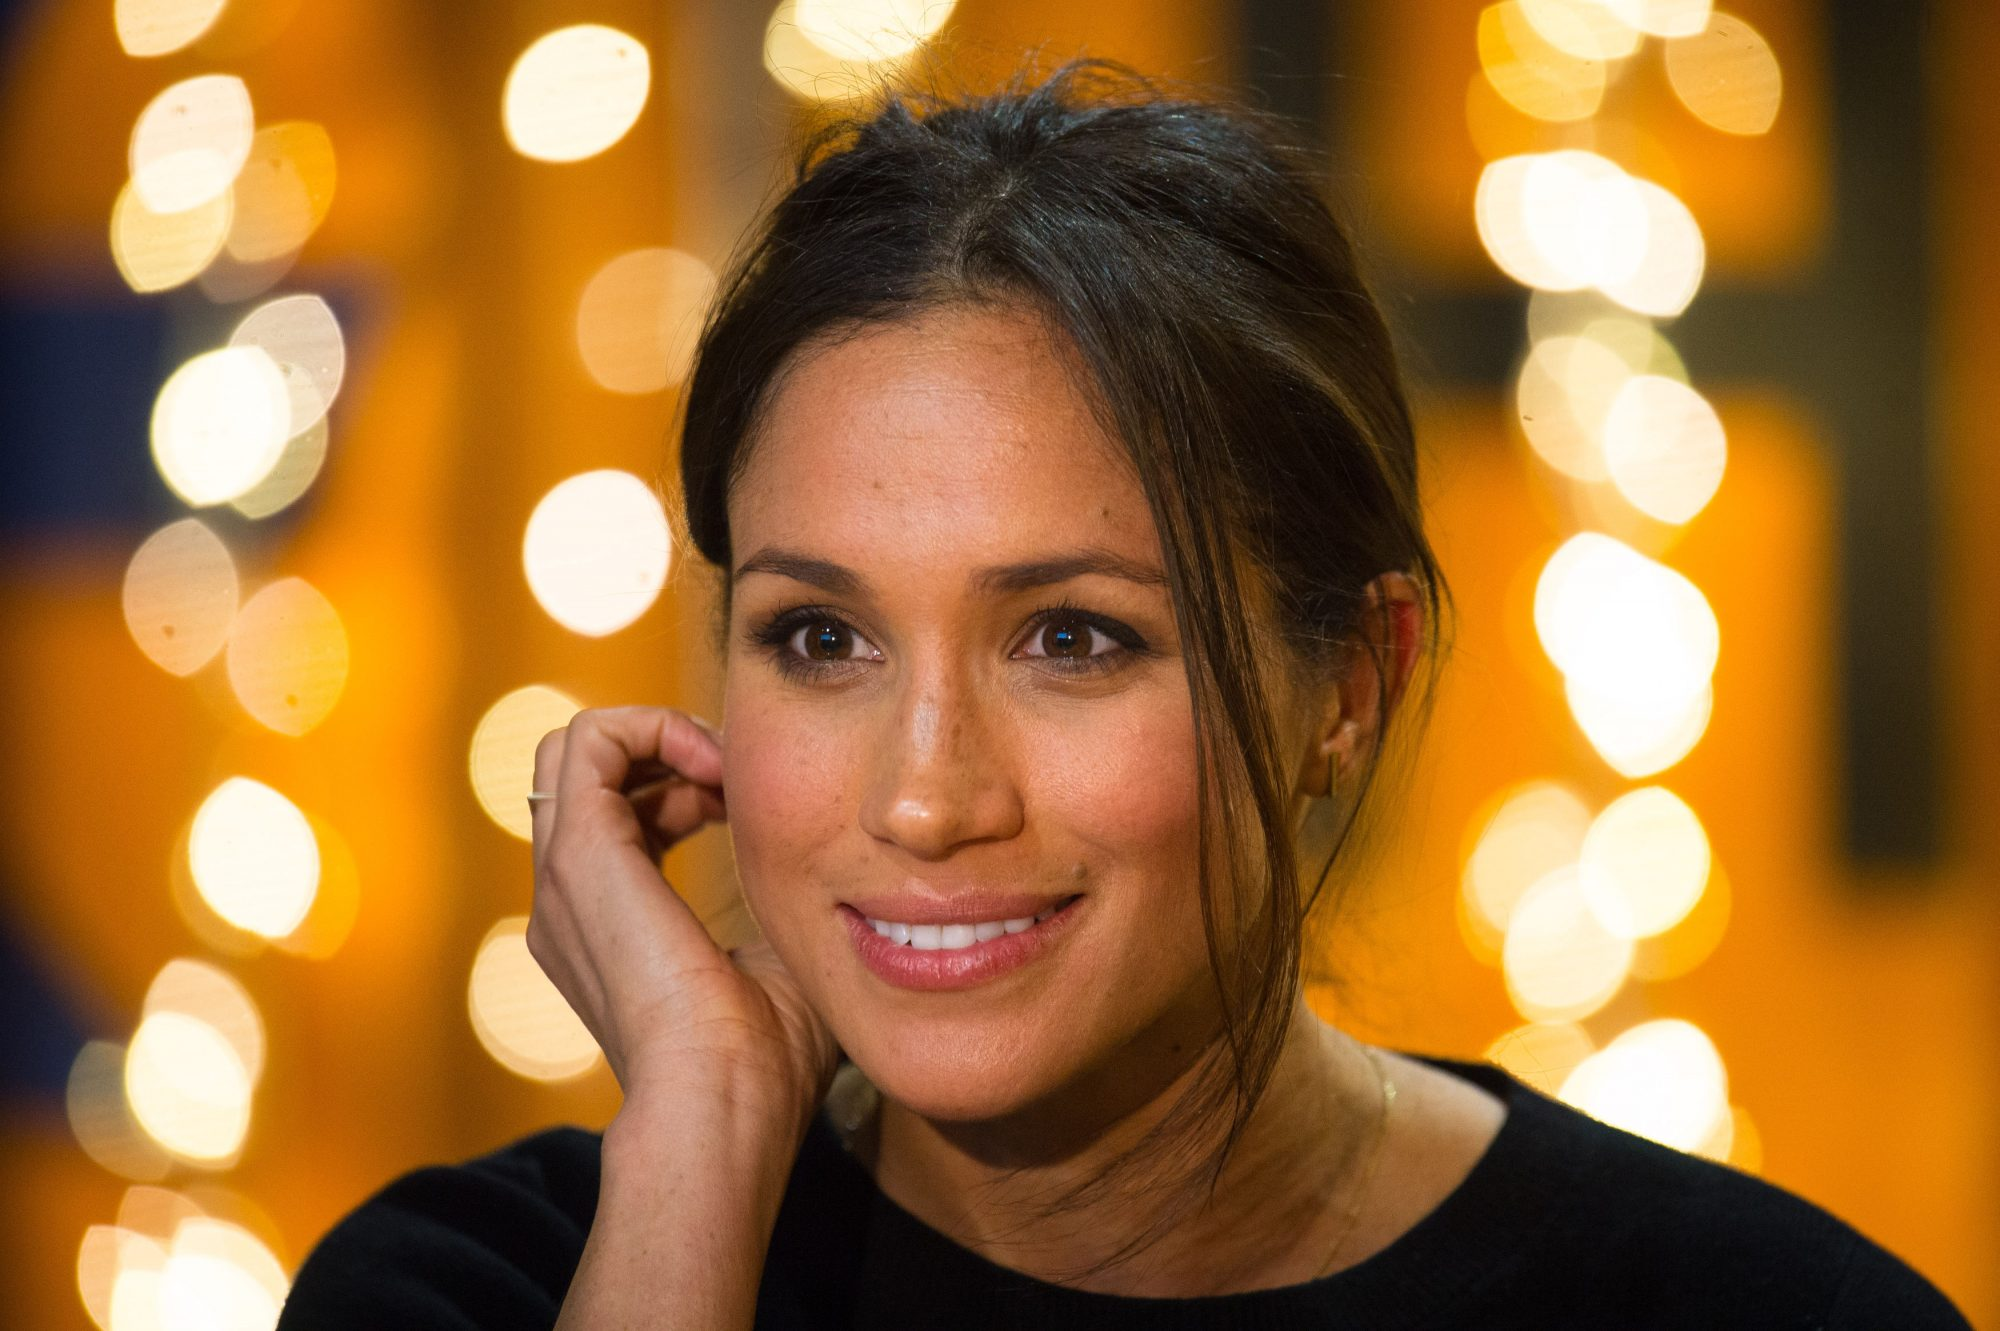 Meghan Markle Broke a Major Royal Style Taboo Today—Will Kate Follow?